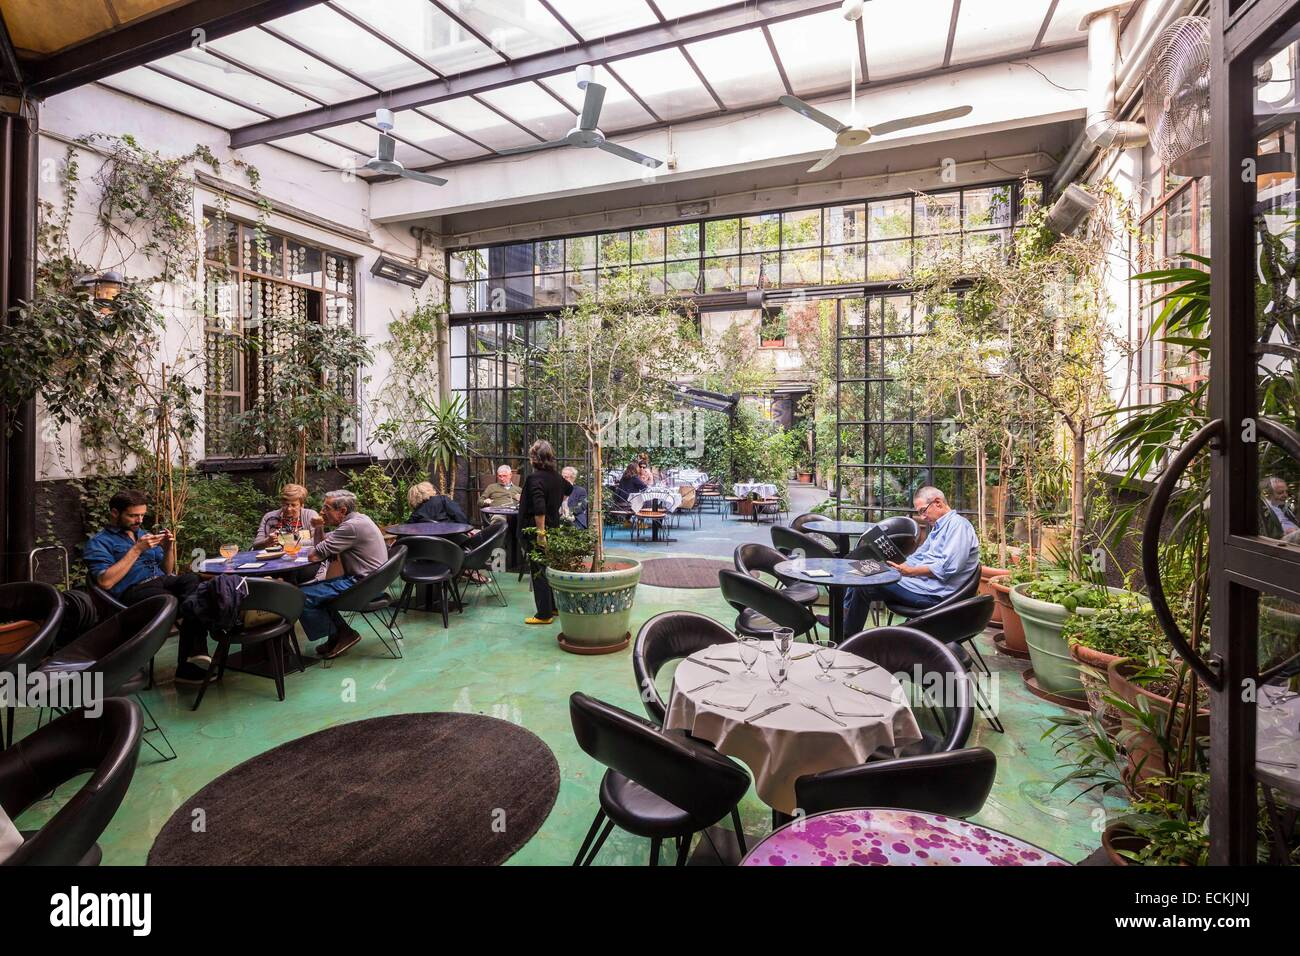 italy lombardy milan 10 corso como cafe restaurant place corso stock photo 76649150 alamy. Black Bedroom Furniture Sets. Home Design Ideas